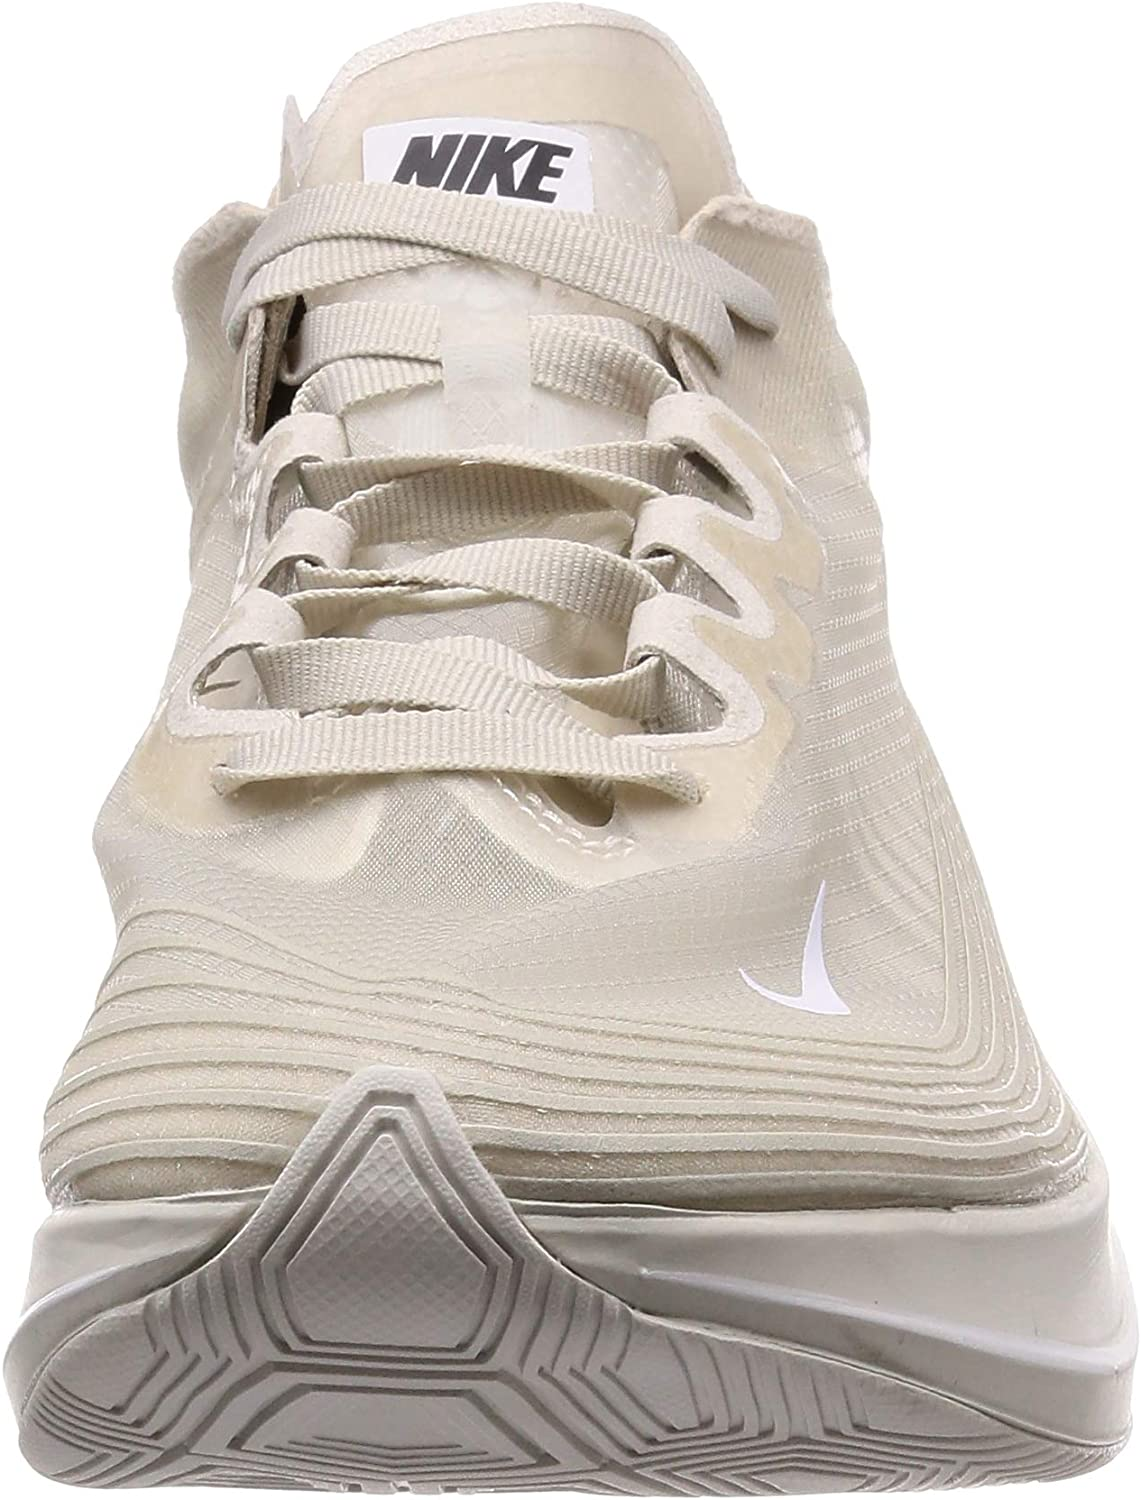 Nike Zoom Fly SP – US 8.5